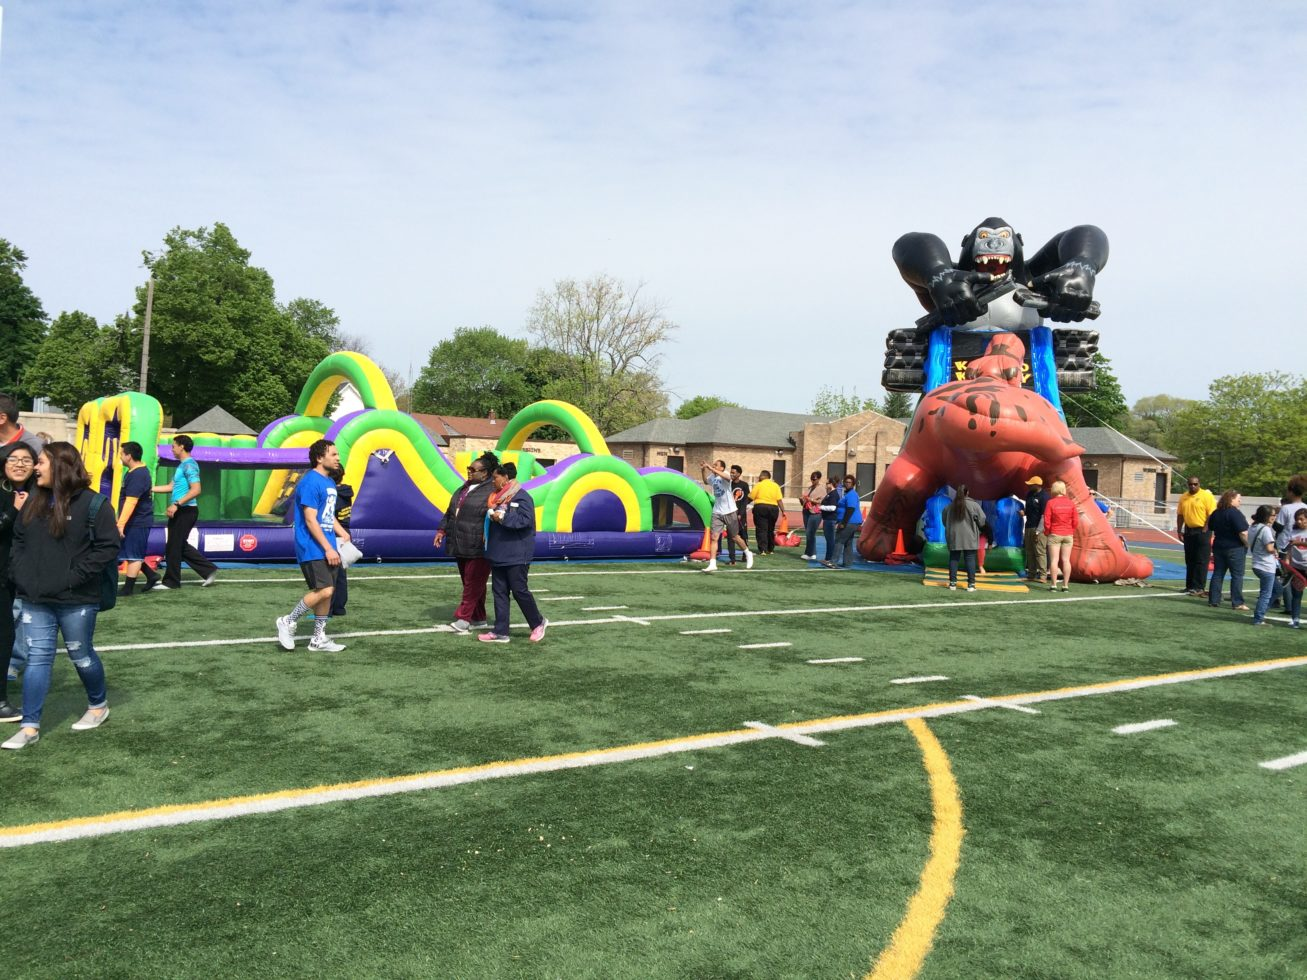 Kongo Krazy and Duo run obstacle course at an event